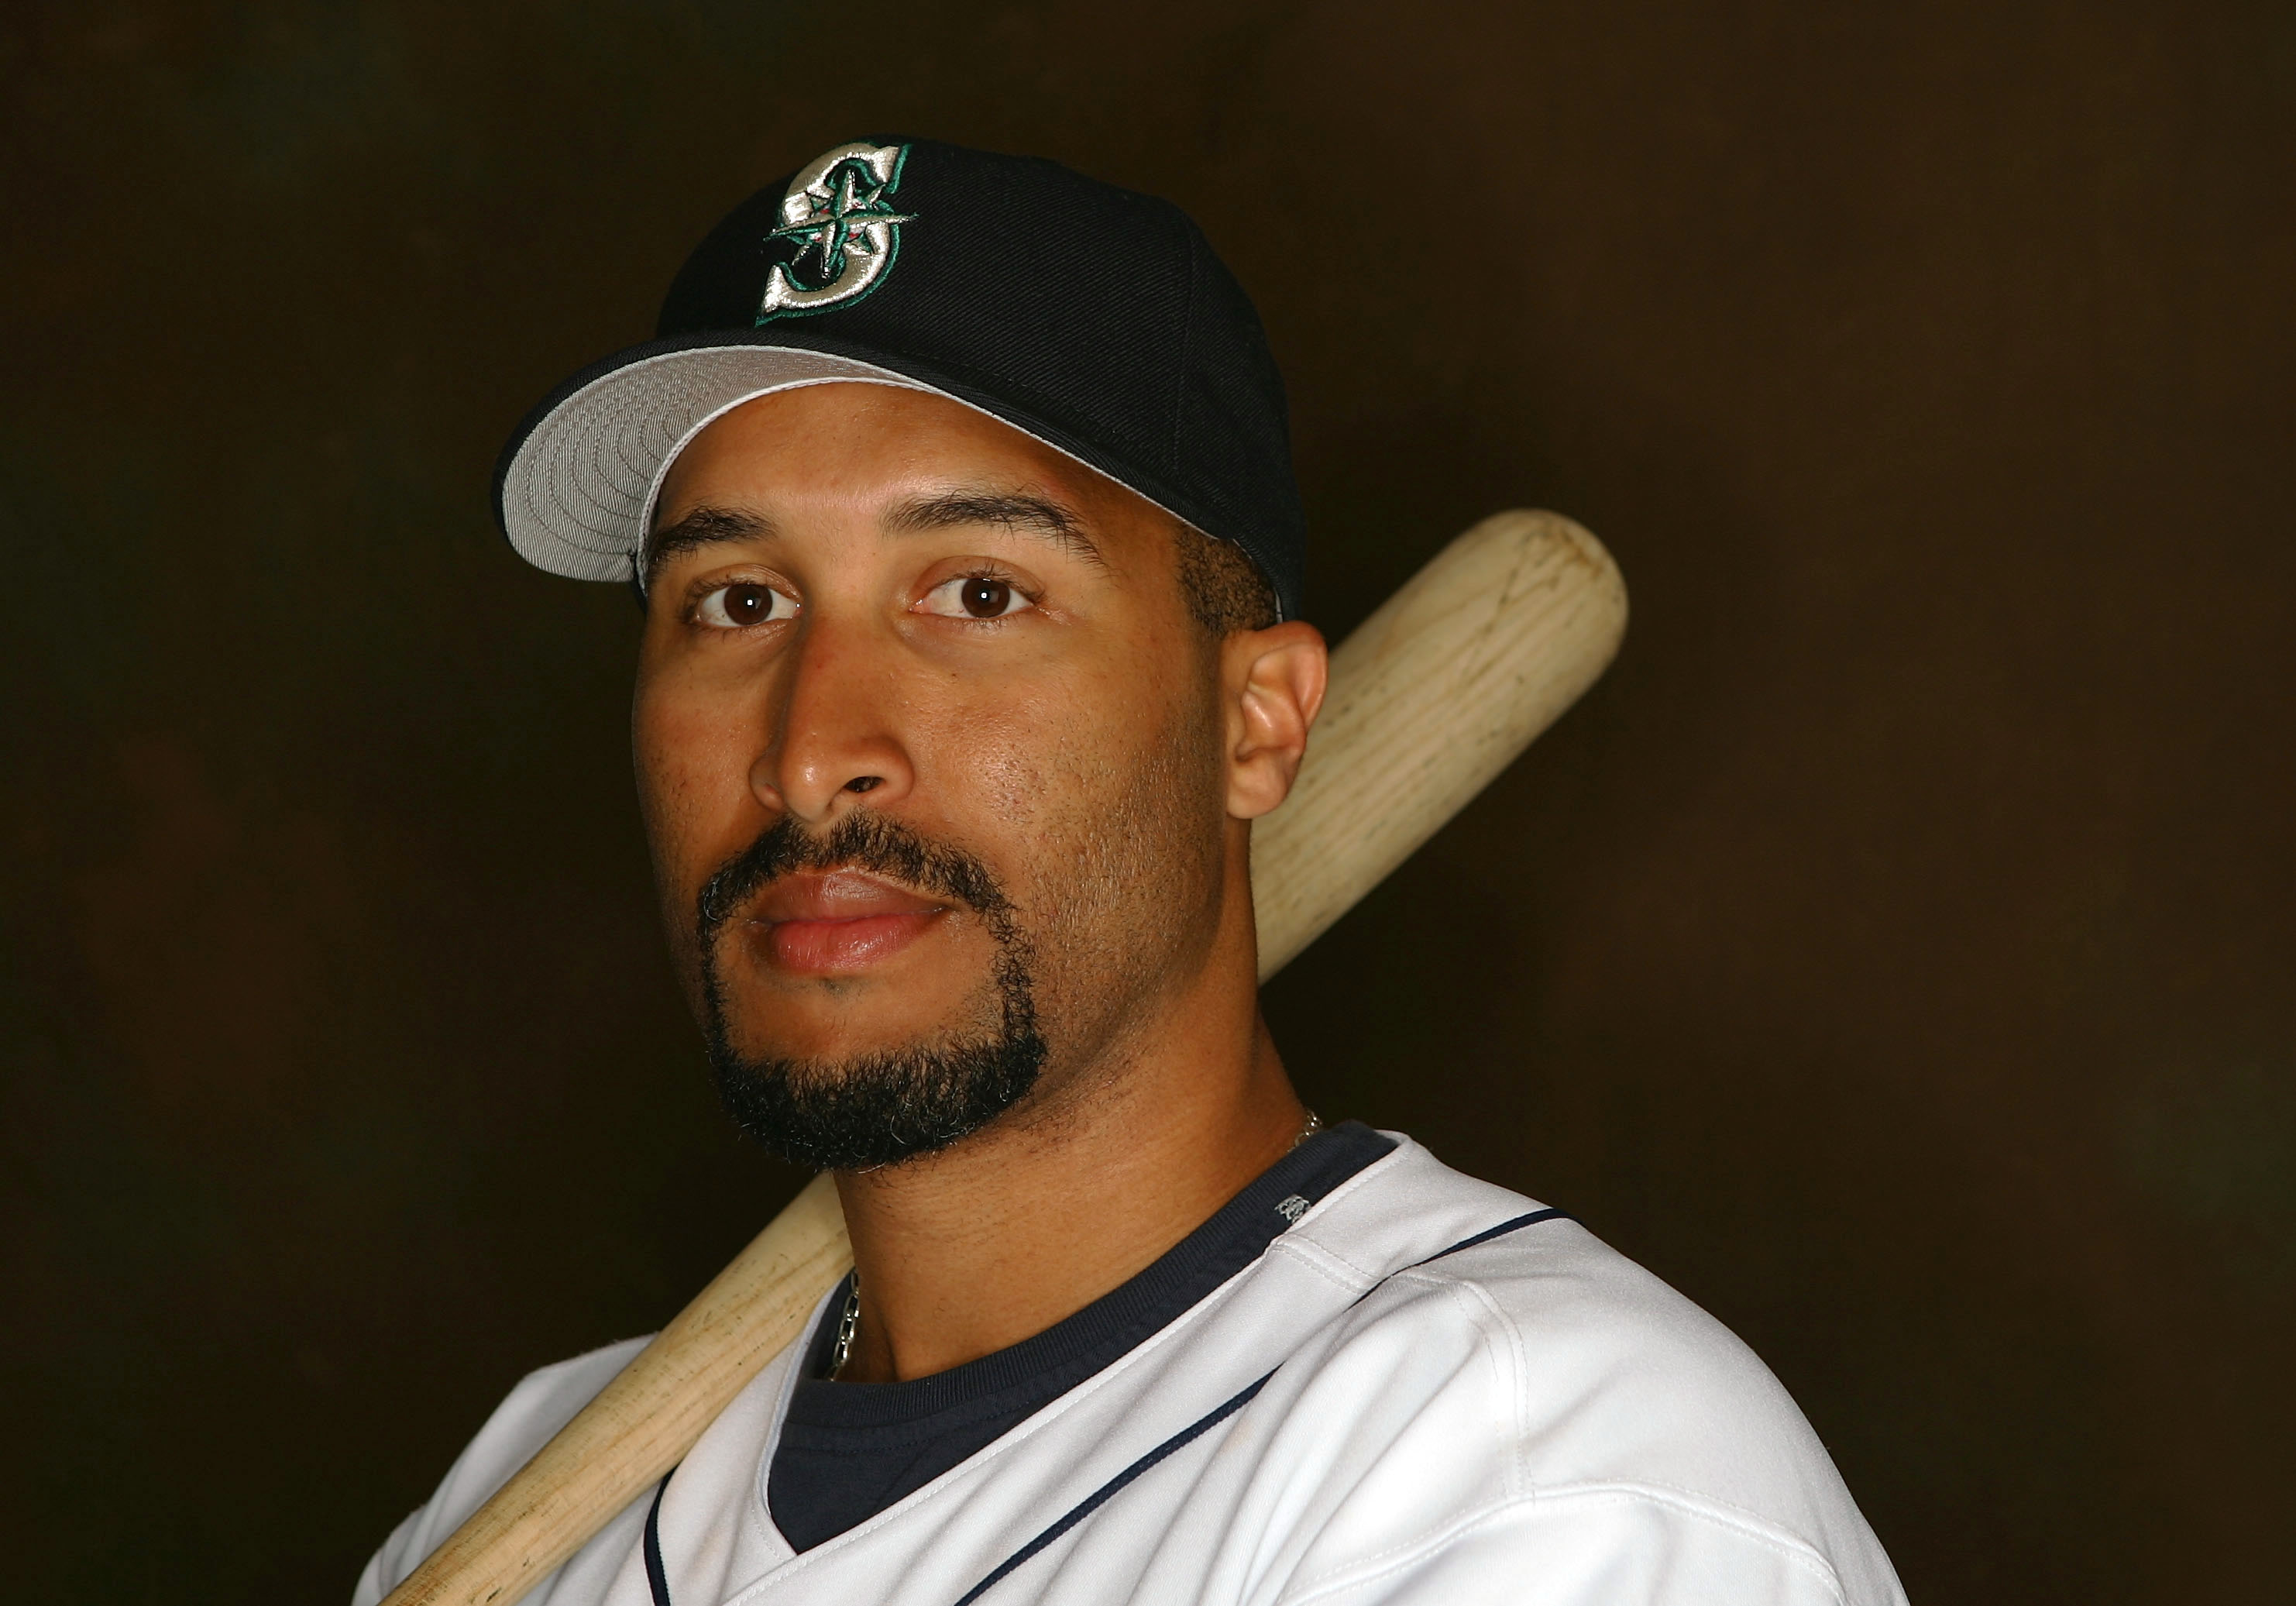 PEORIA, AZ - FEBRUARY 27:  Randy Winn #2 of the Seattle Mariners poses for a portrait during the Seattle Mariners Photo Day on February 27, 2005 at Peoria Stadium in Peoria, Arizona.  (Photo by Lisa Blumenfeld /Getty Images)